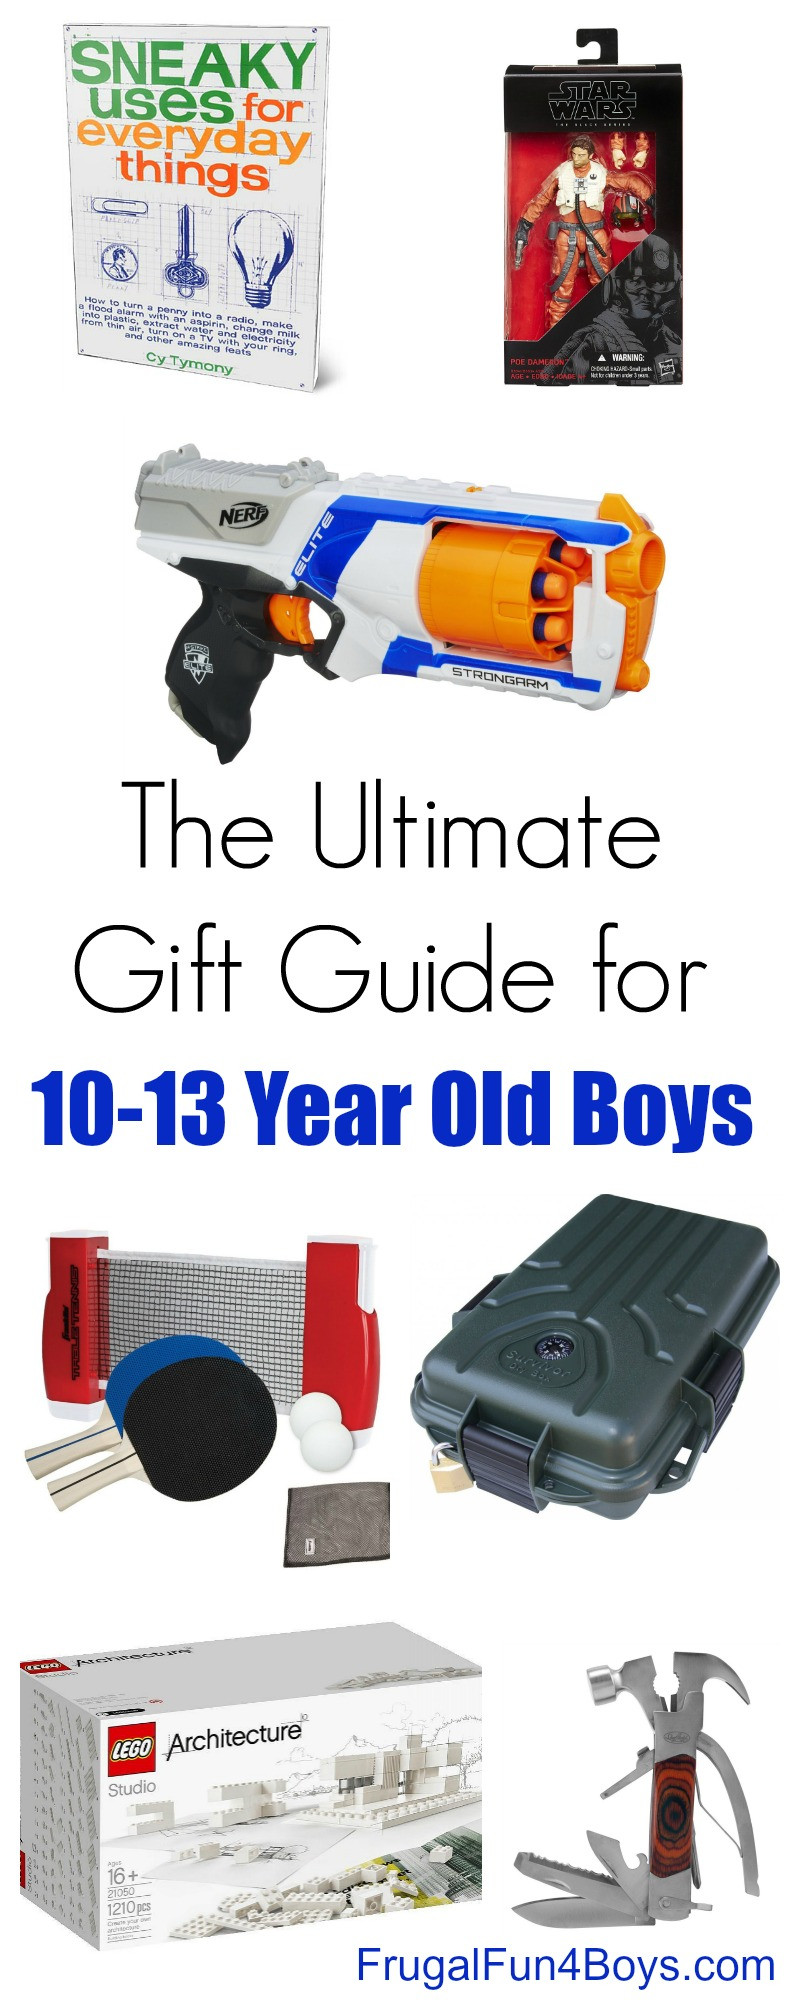 Best ideas about Gift Ideas For 13 Year Old Boys . Save or Pin Gift Ideas for 10 to 13 Year Old Boys Now.